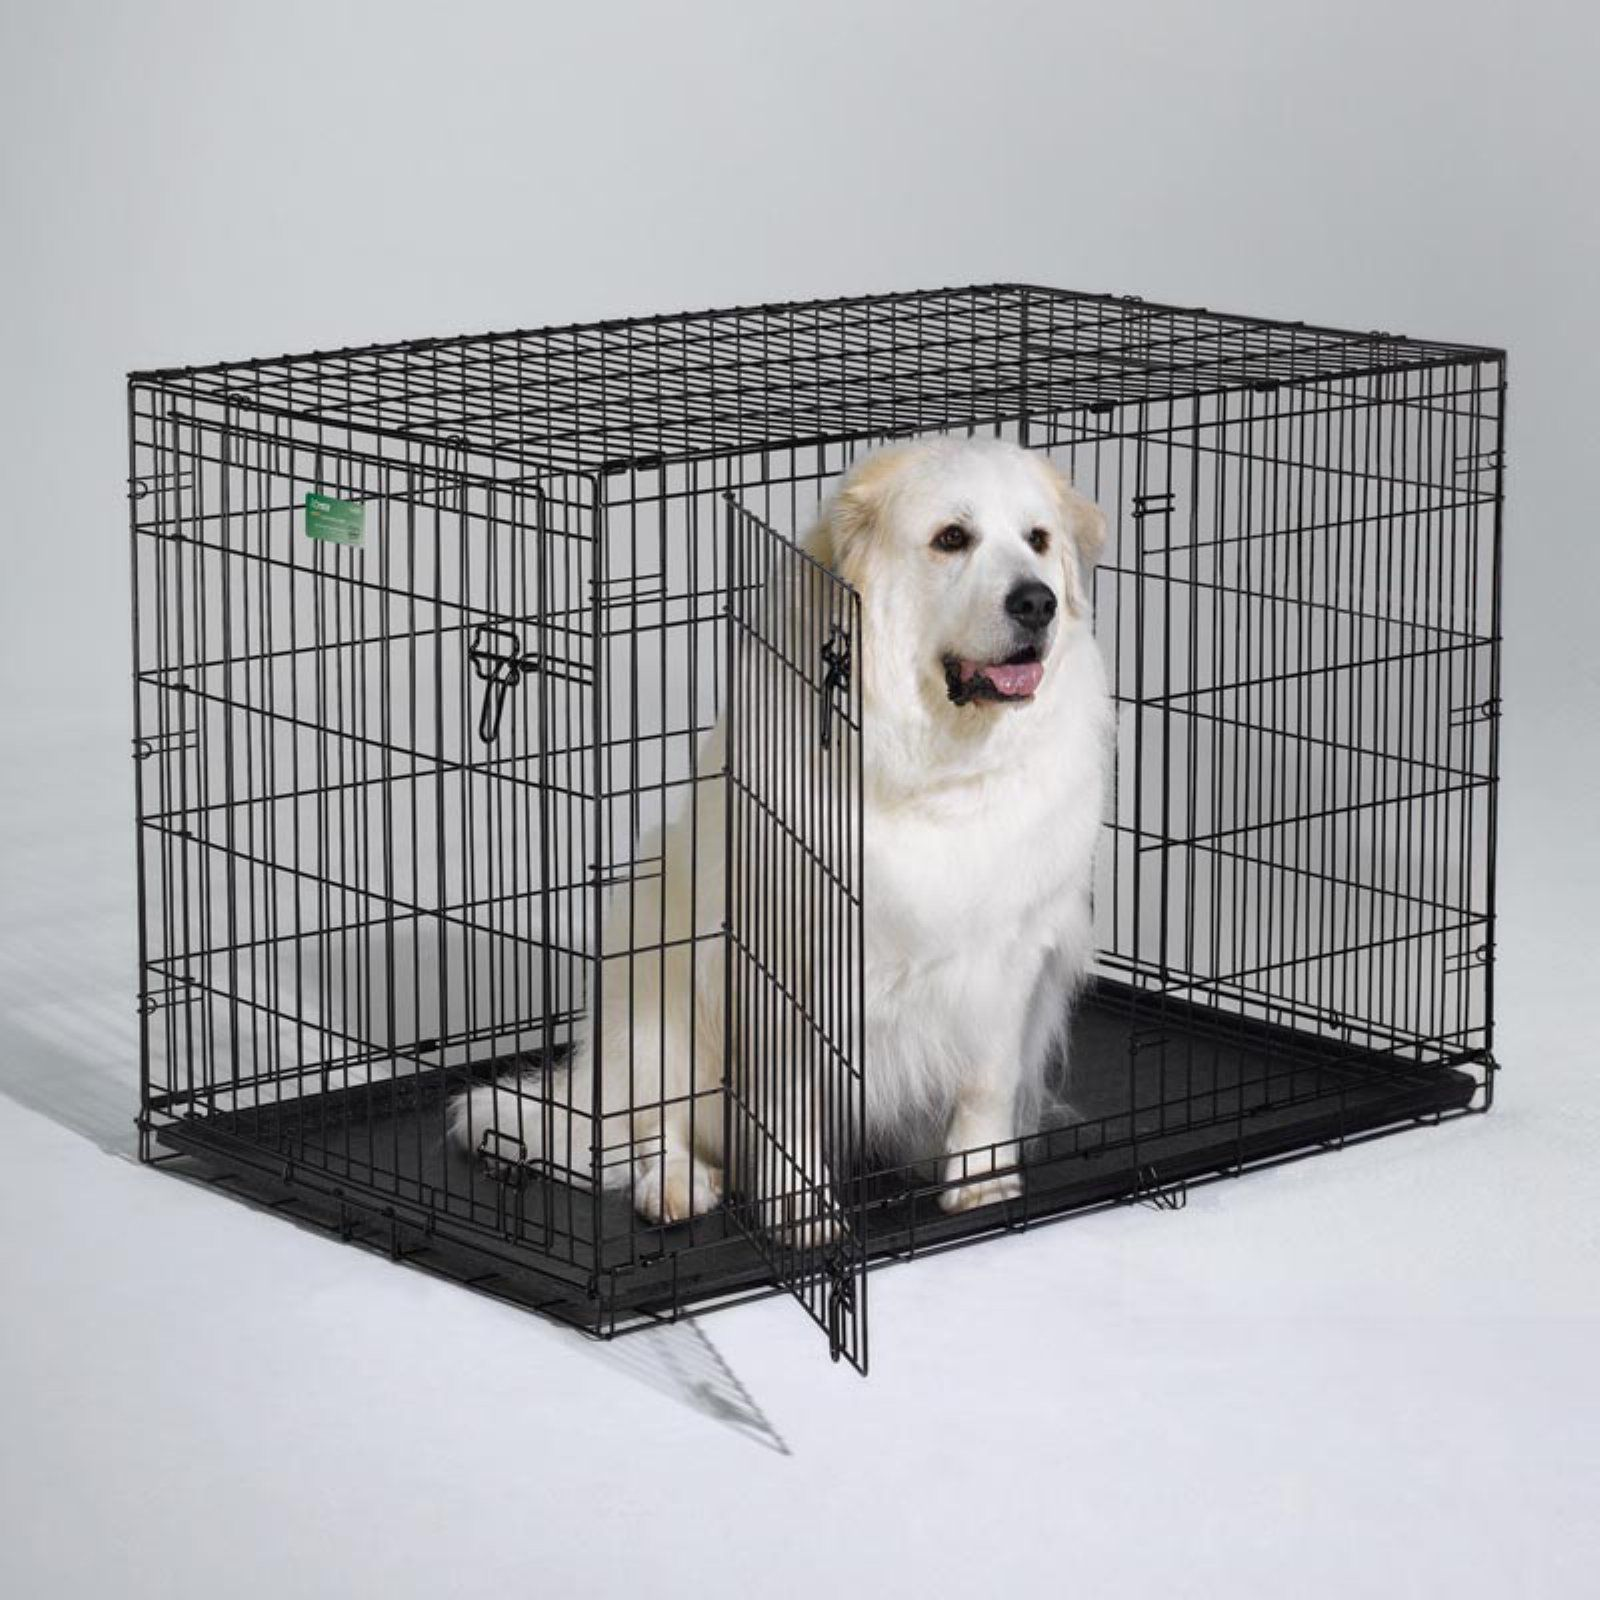 Midwest Homes For Pets Icrate Folding Double Door Metal Dog Crate Large Dog Crate Xxxl Dog Crate Dog Crate